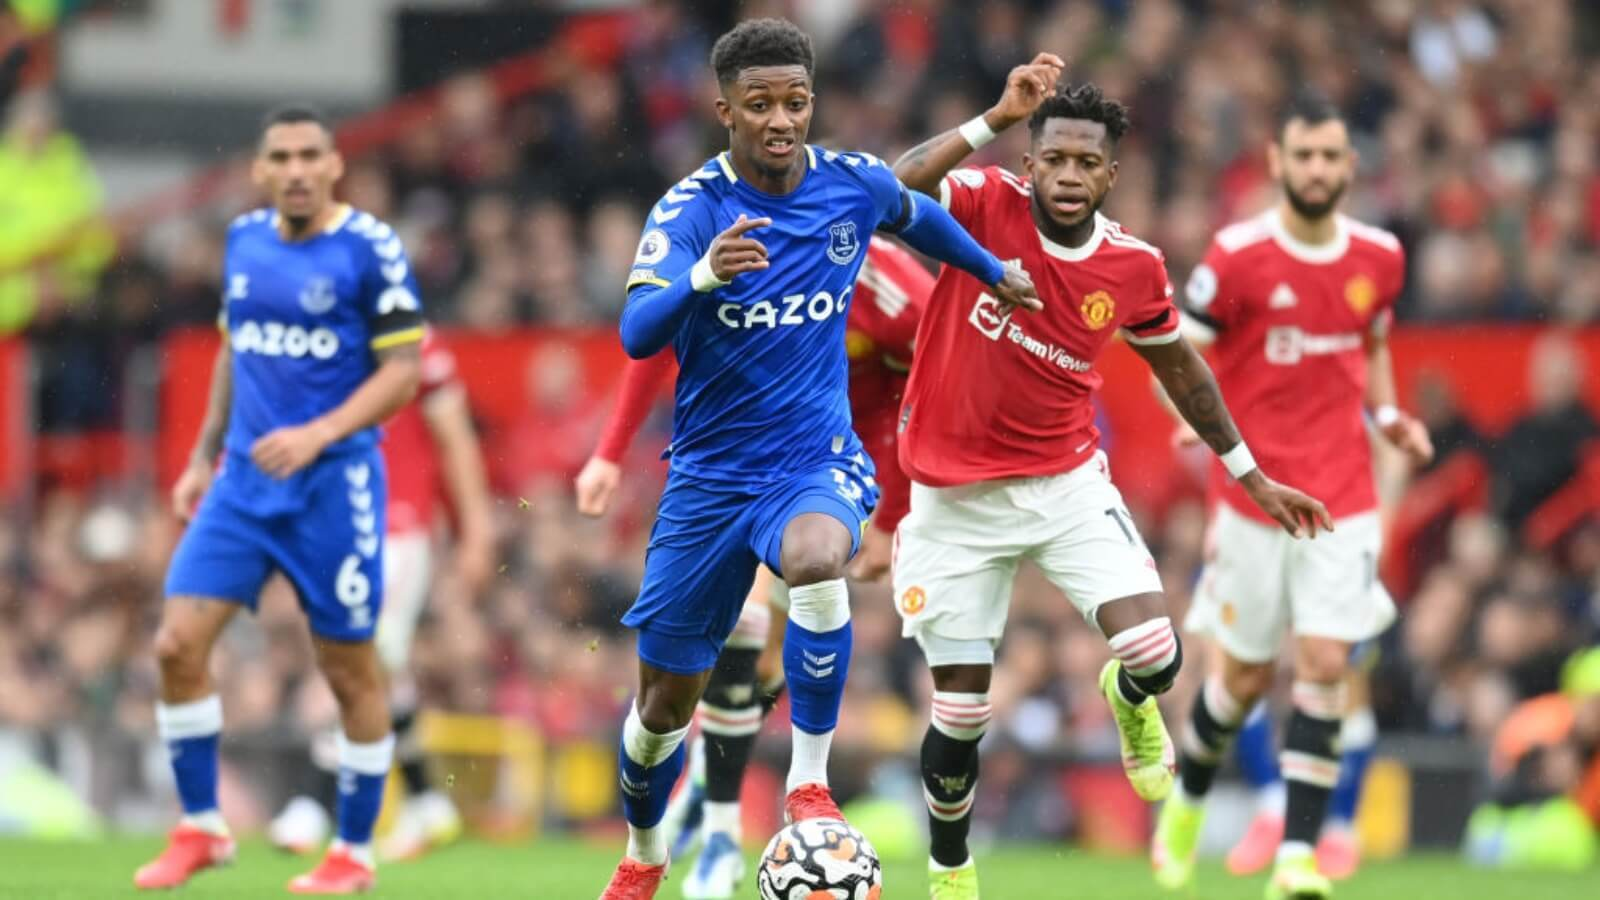 Premier League: Everton held Manchester United on draw